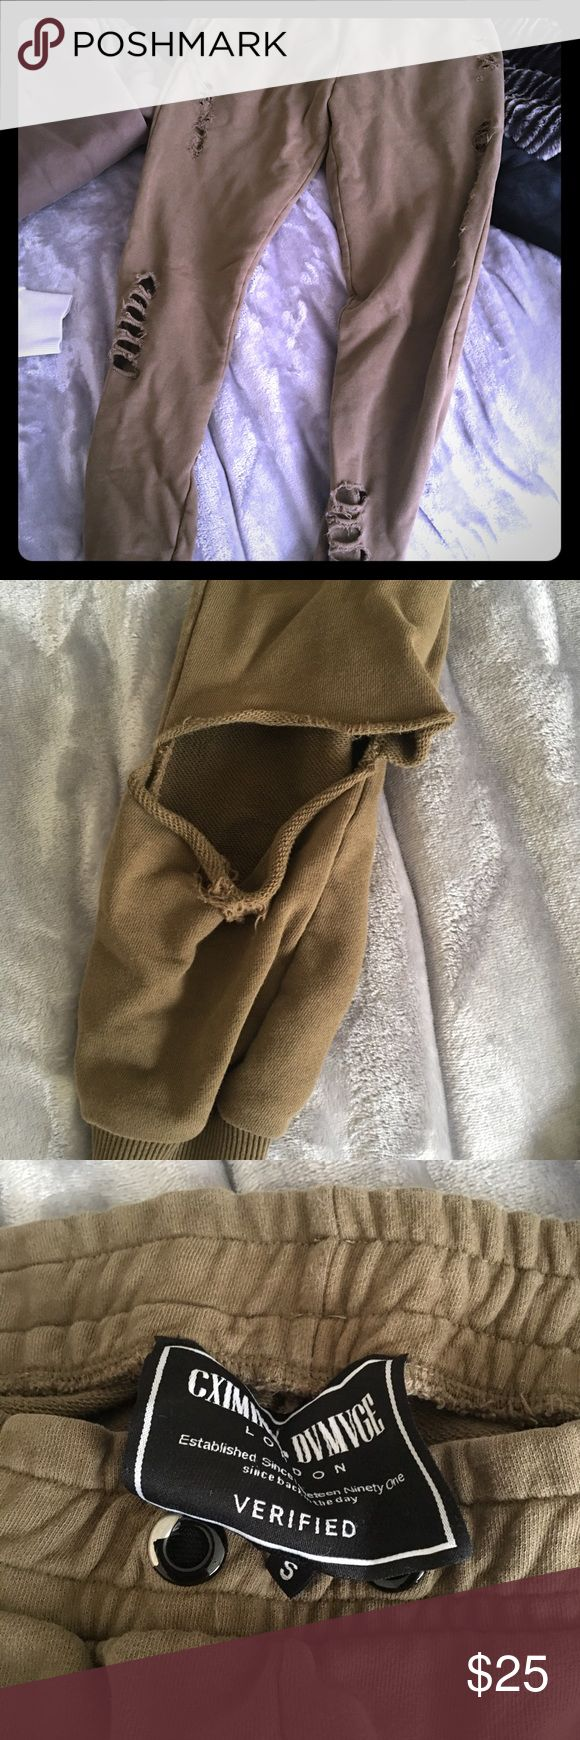 Criminal Damage Olive green distressed sweatpants This one is size small and olive colored. Bought in england at their store. Not sold anymore from criminal Damage! Has small rip on right leg back of leg as pictured so you can see. And string is missing as seen in pics. Offers welcome and bundle up with my matching items for a whole outfit! Condition of item is reflected in price. 💰Bundle for extra savings!💰 Criminal Damage Pants Track Pants & Joggers